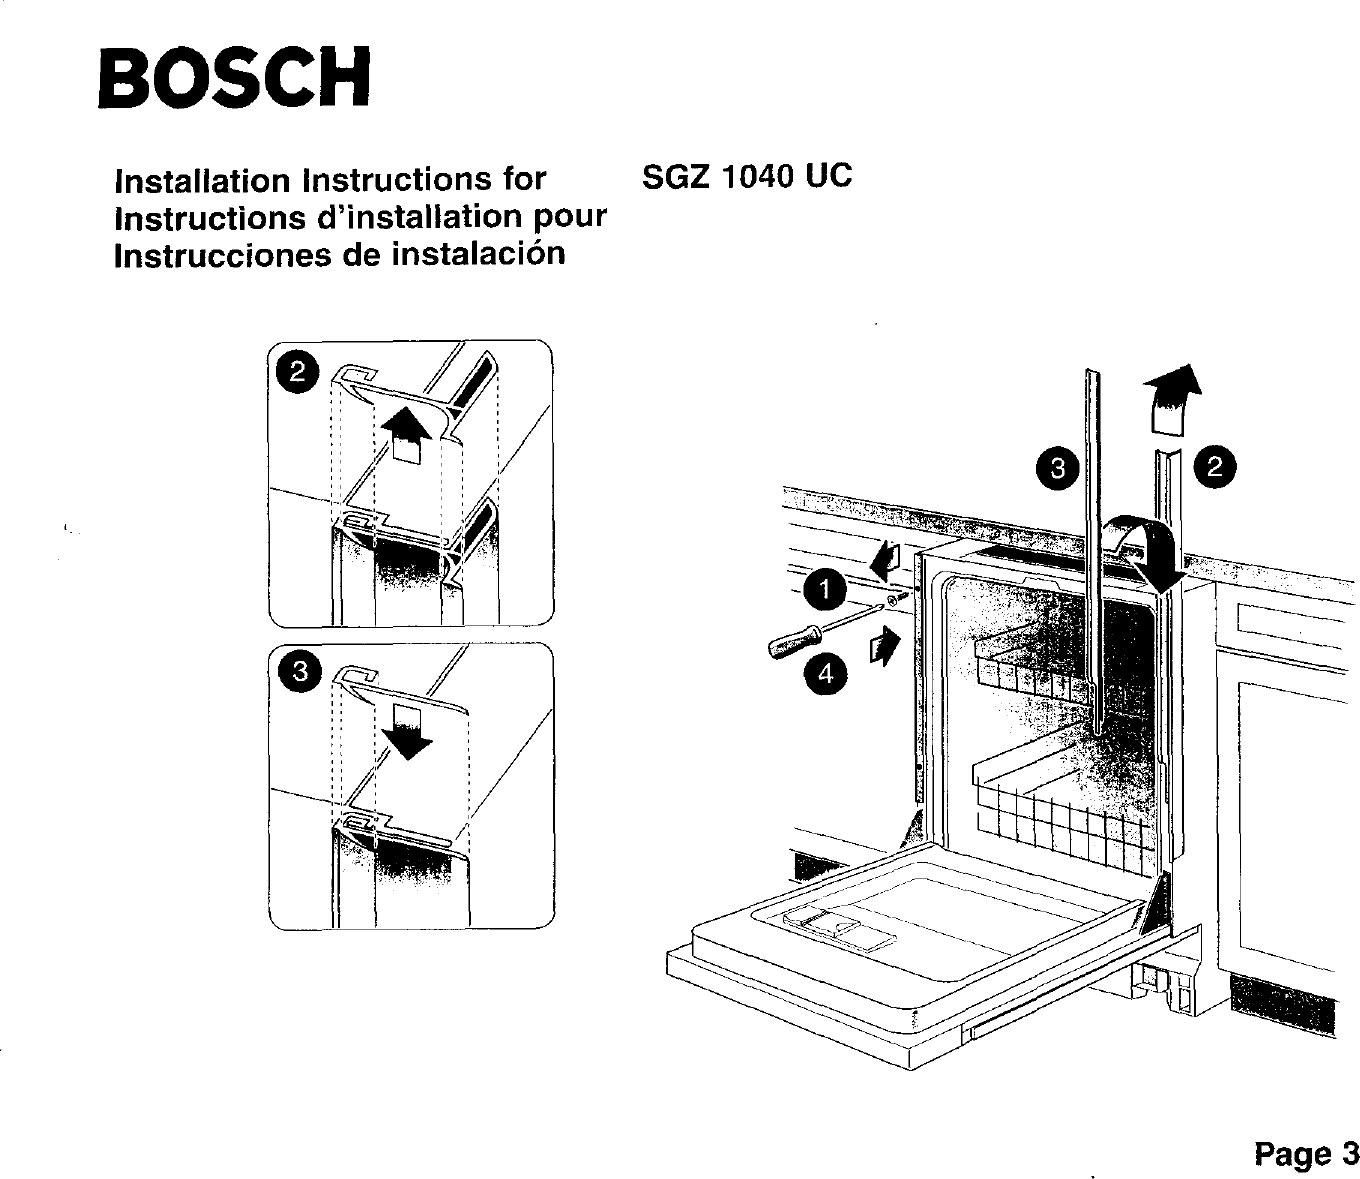 BOSCH Dishwasher Manual L0020047